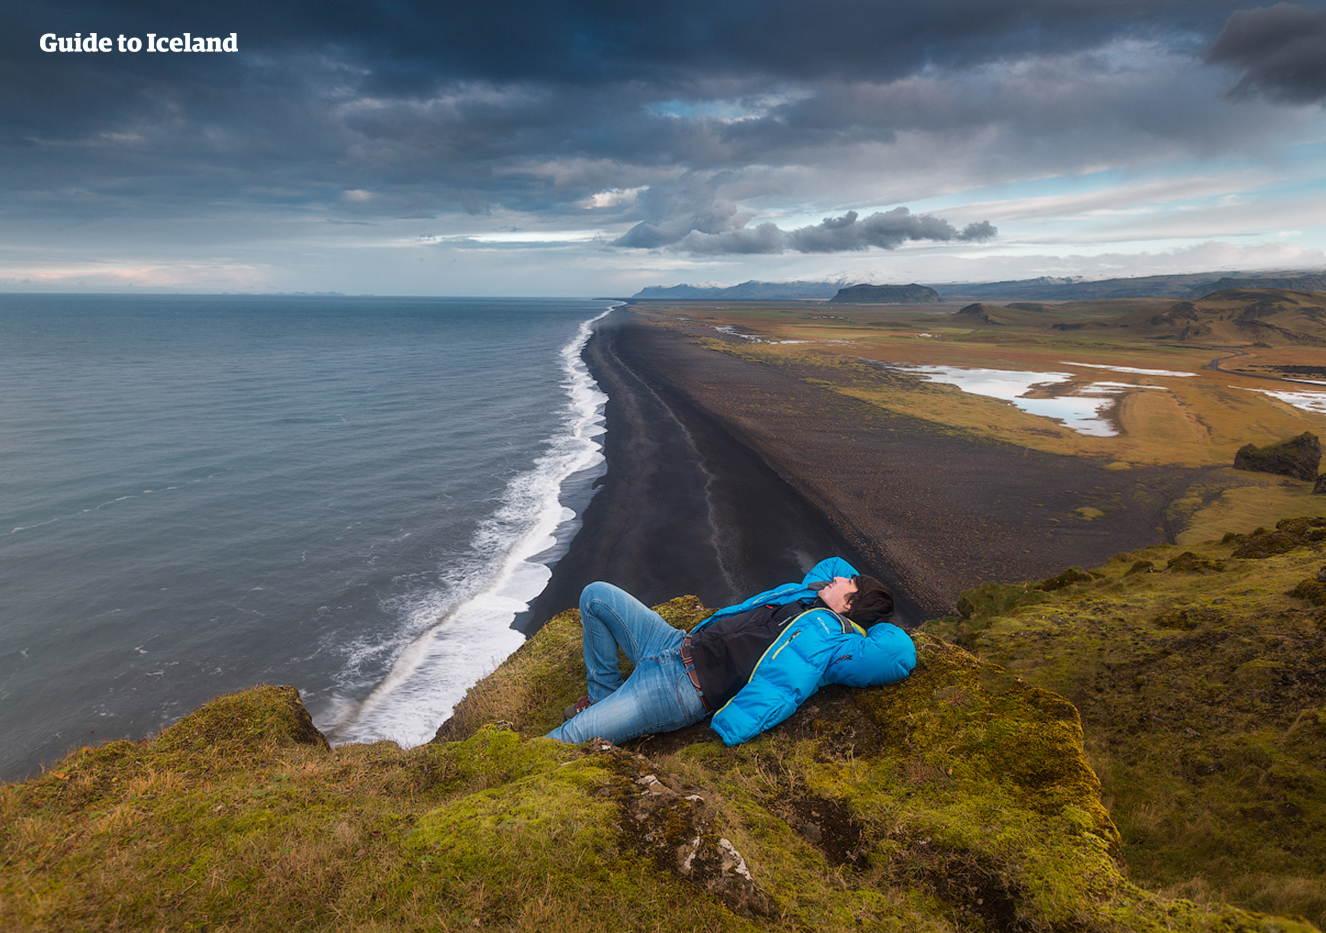 8 Day Summer Vacation Package Tour of the Best Attractions in Iceland - day 3